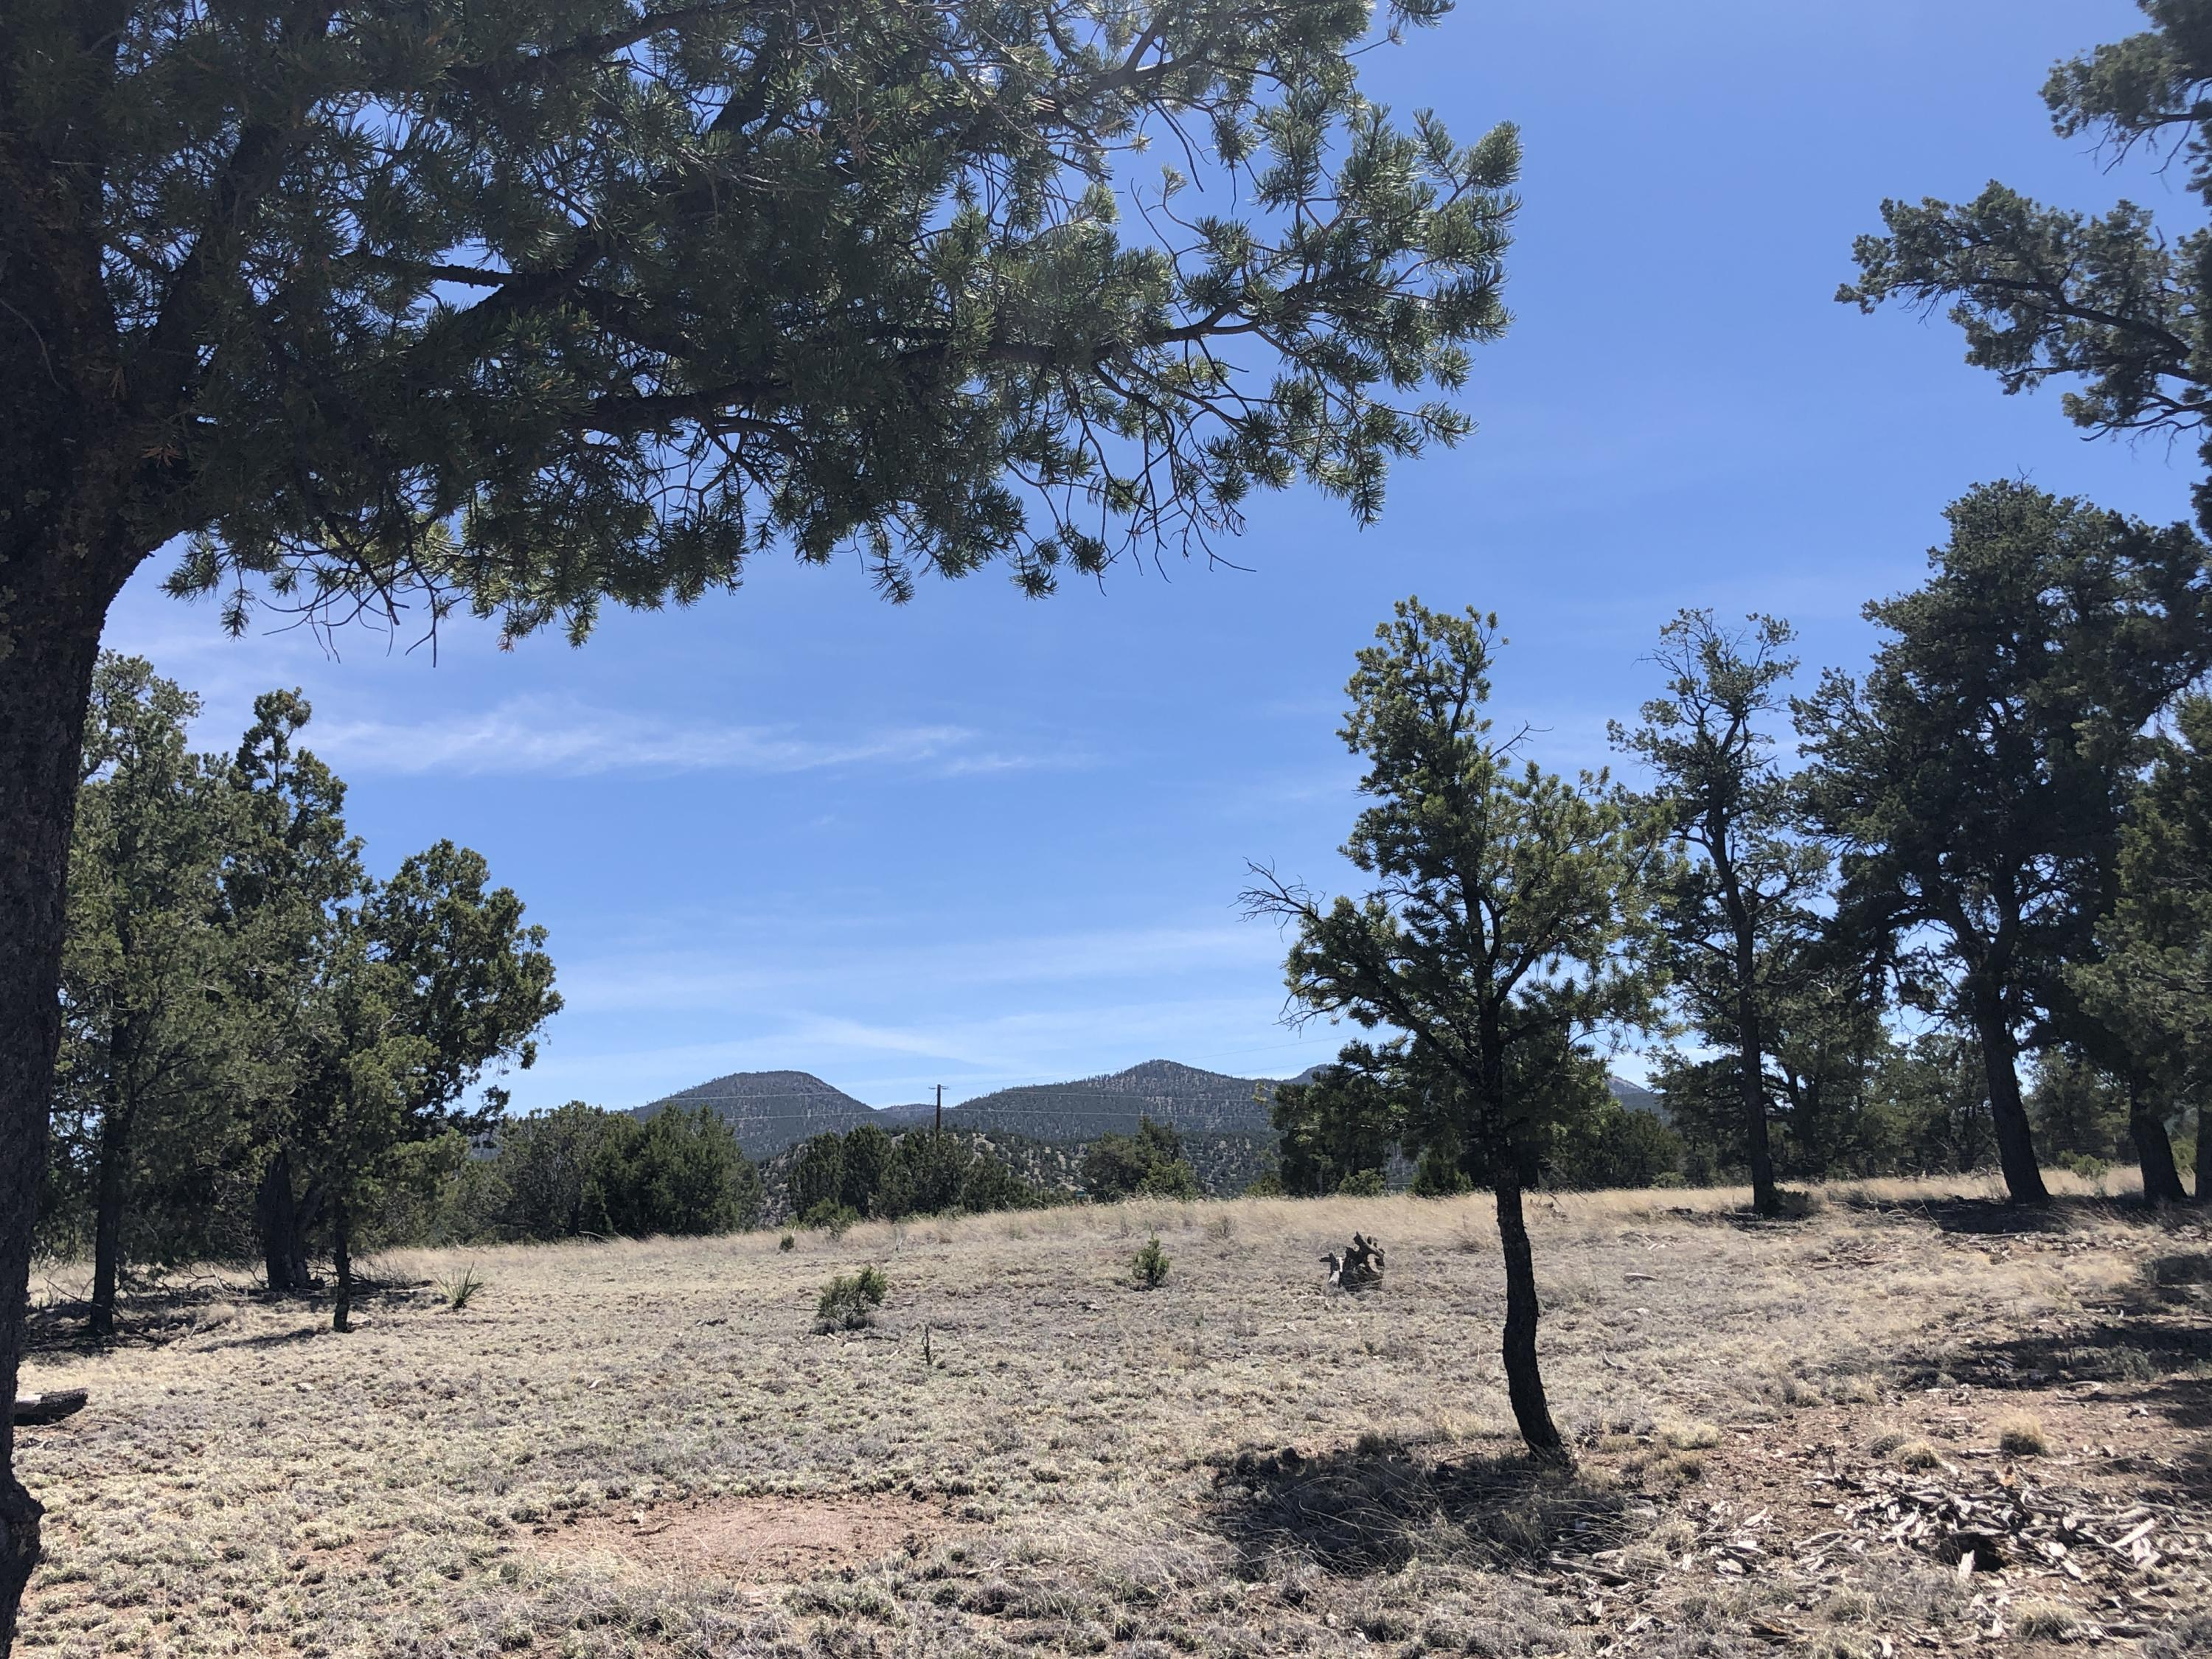 314 Morningstar Circle, Datil, NM 87821 - Datil, NM real estate listing